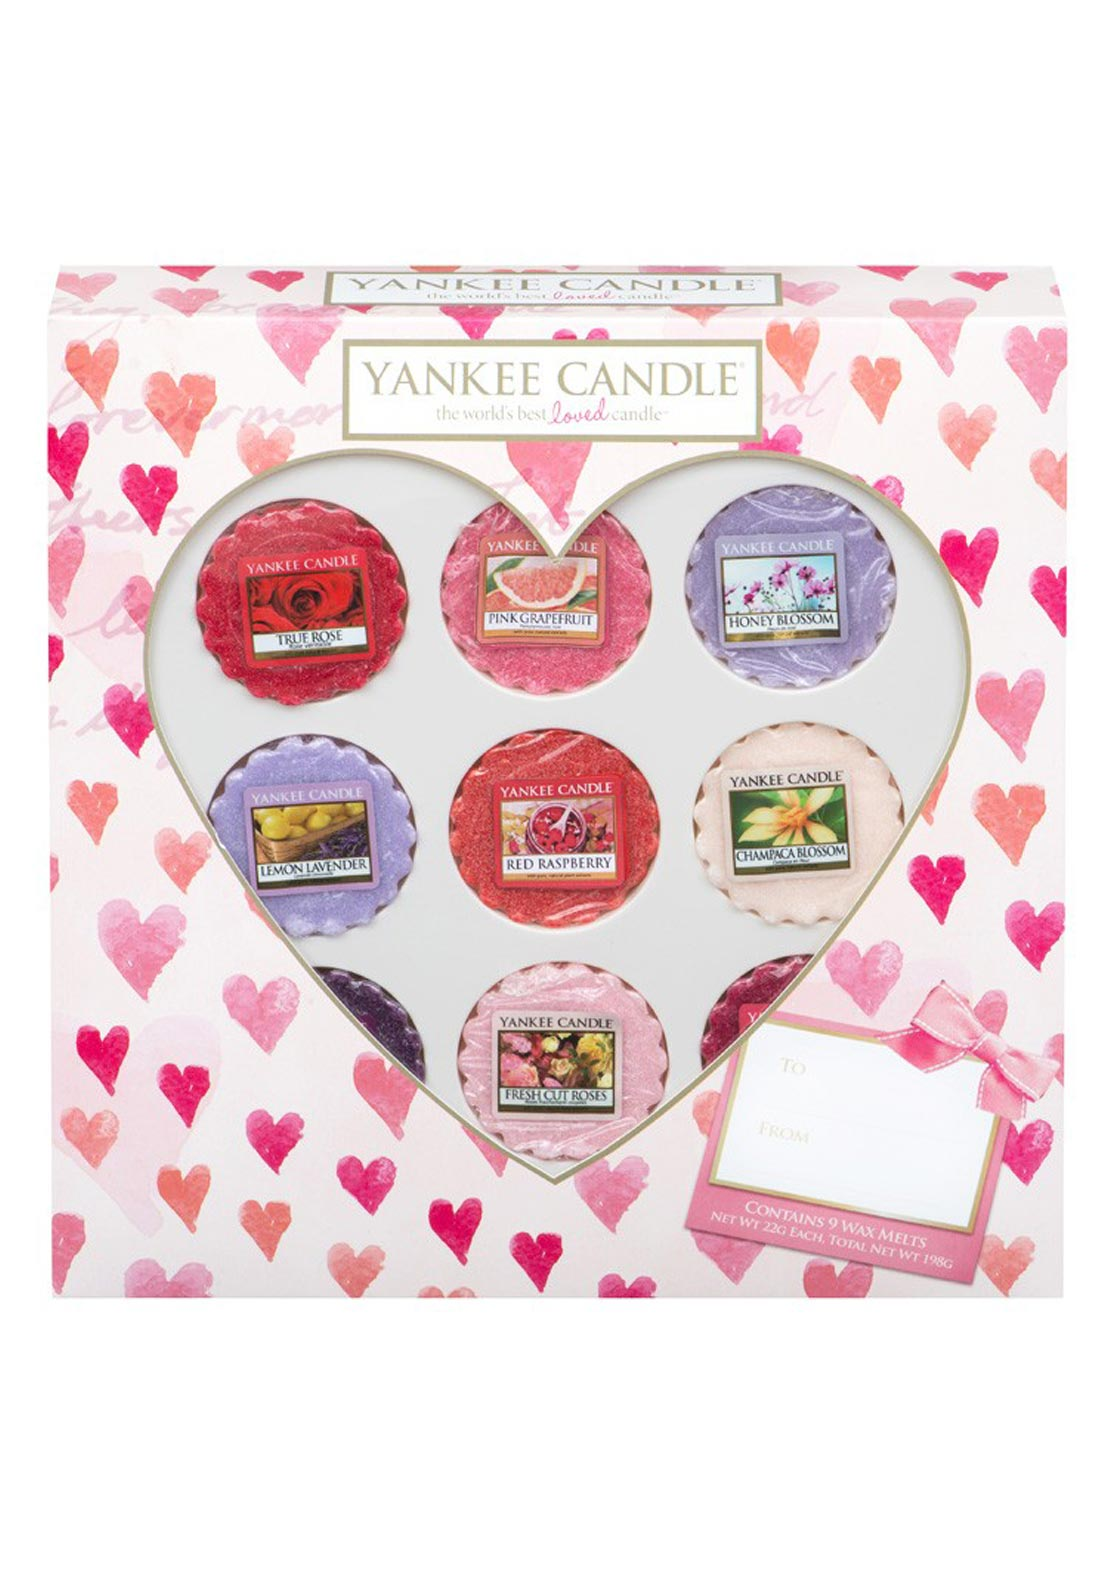 Yankee Candle The Worlds Best Loved Candle 9 Wax Melts Gift Set